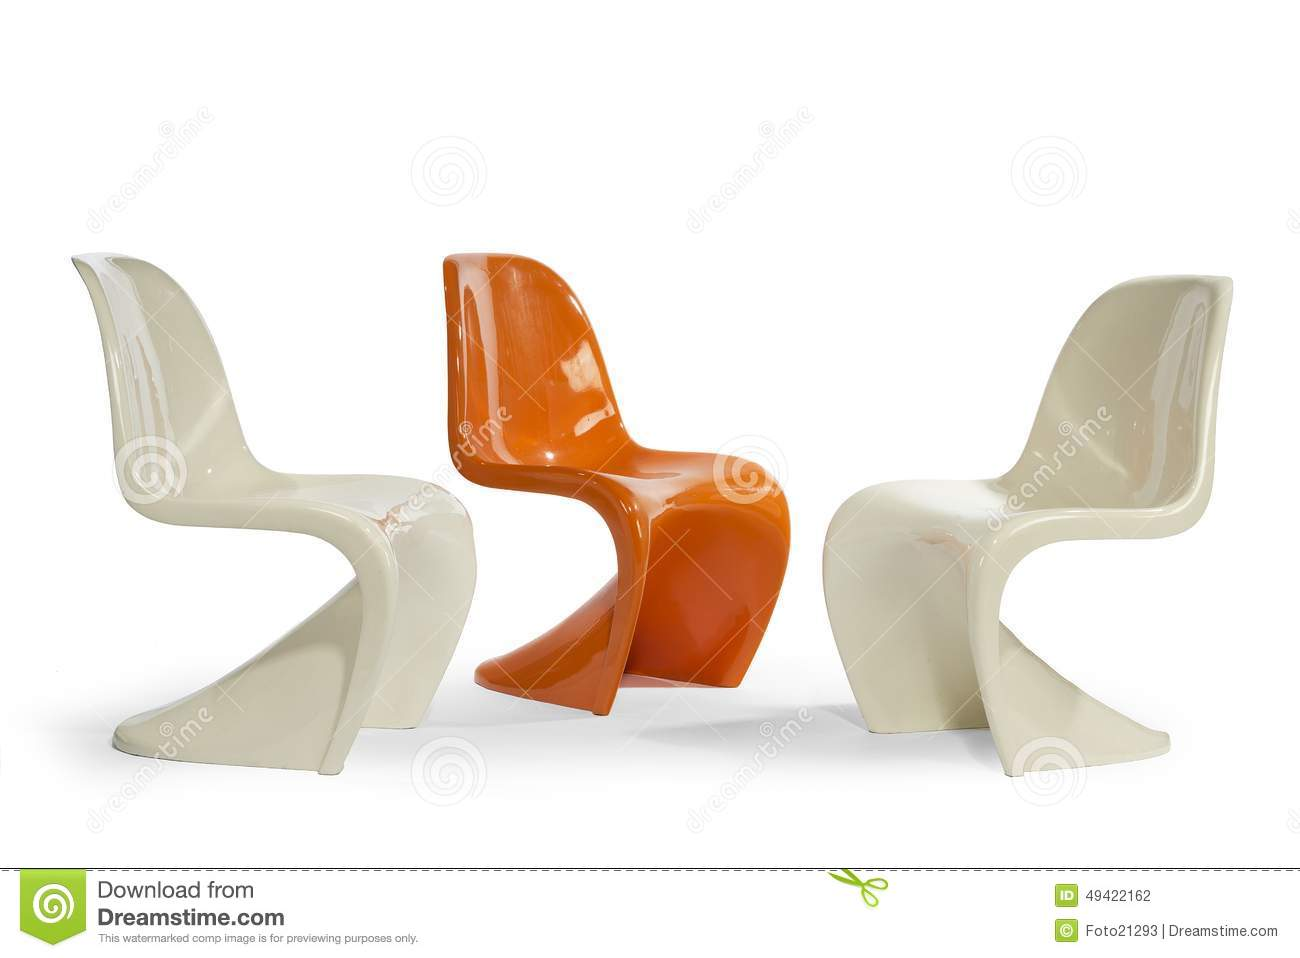 plastic molded chairs tj maxx 1960 -70's moulded stock photo - image: 49422162